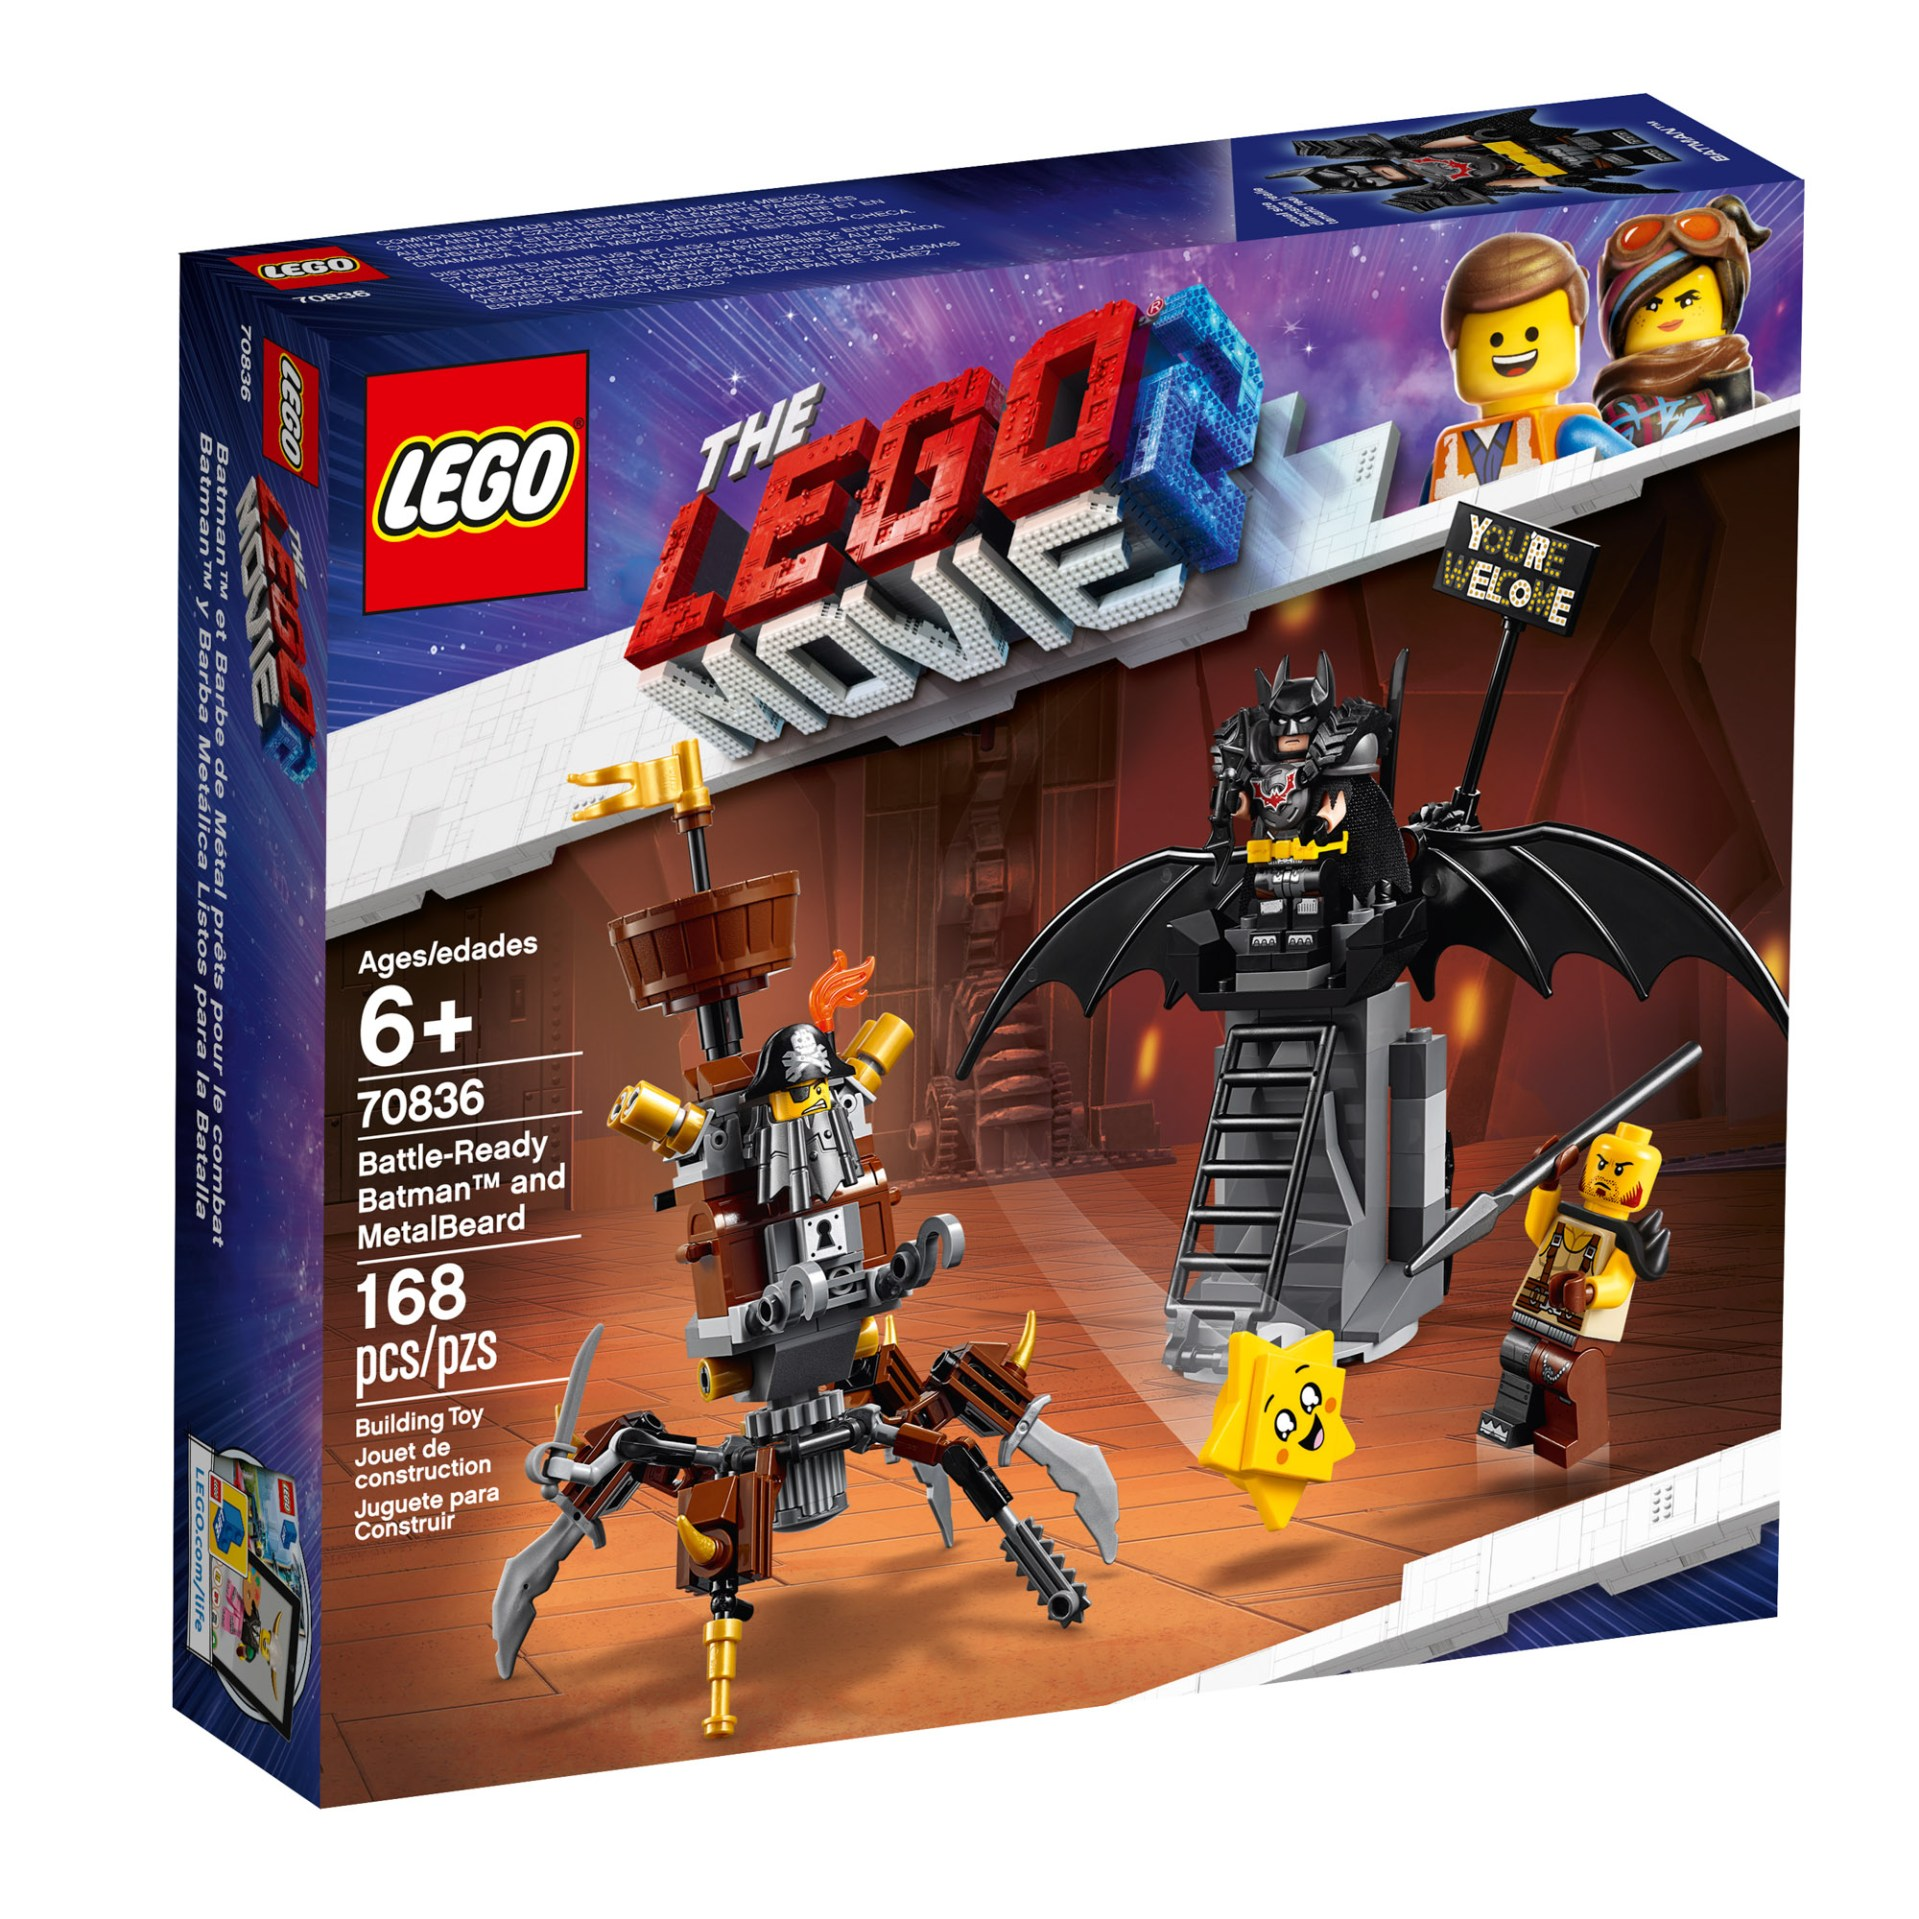 70836 — Battle-ready Batman and MetalBeard